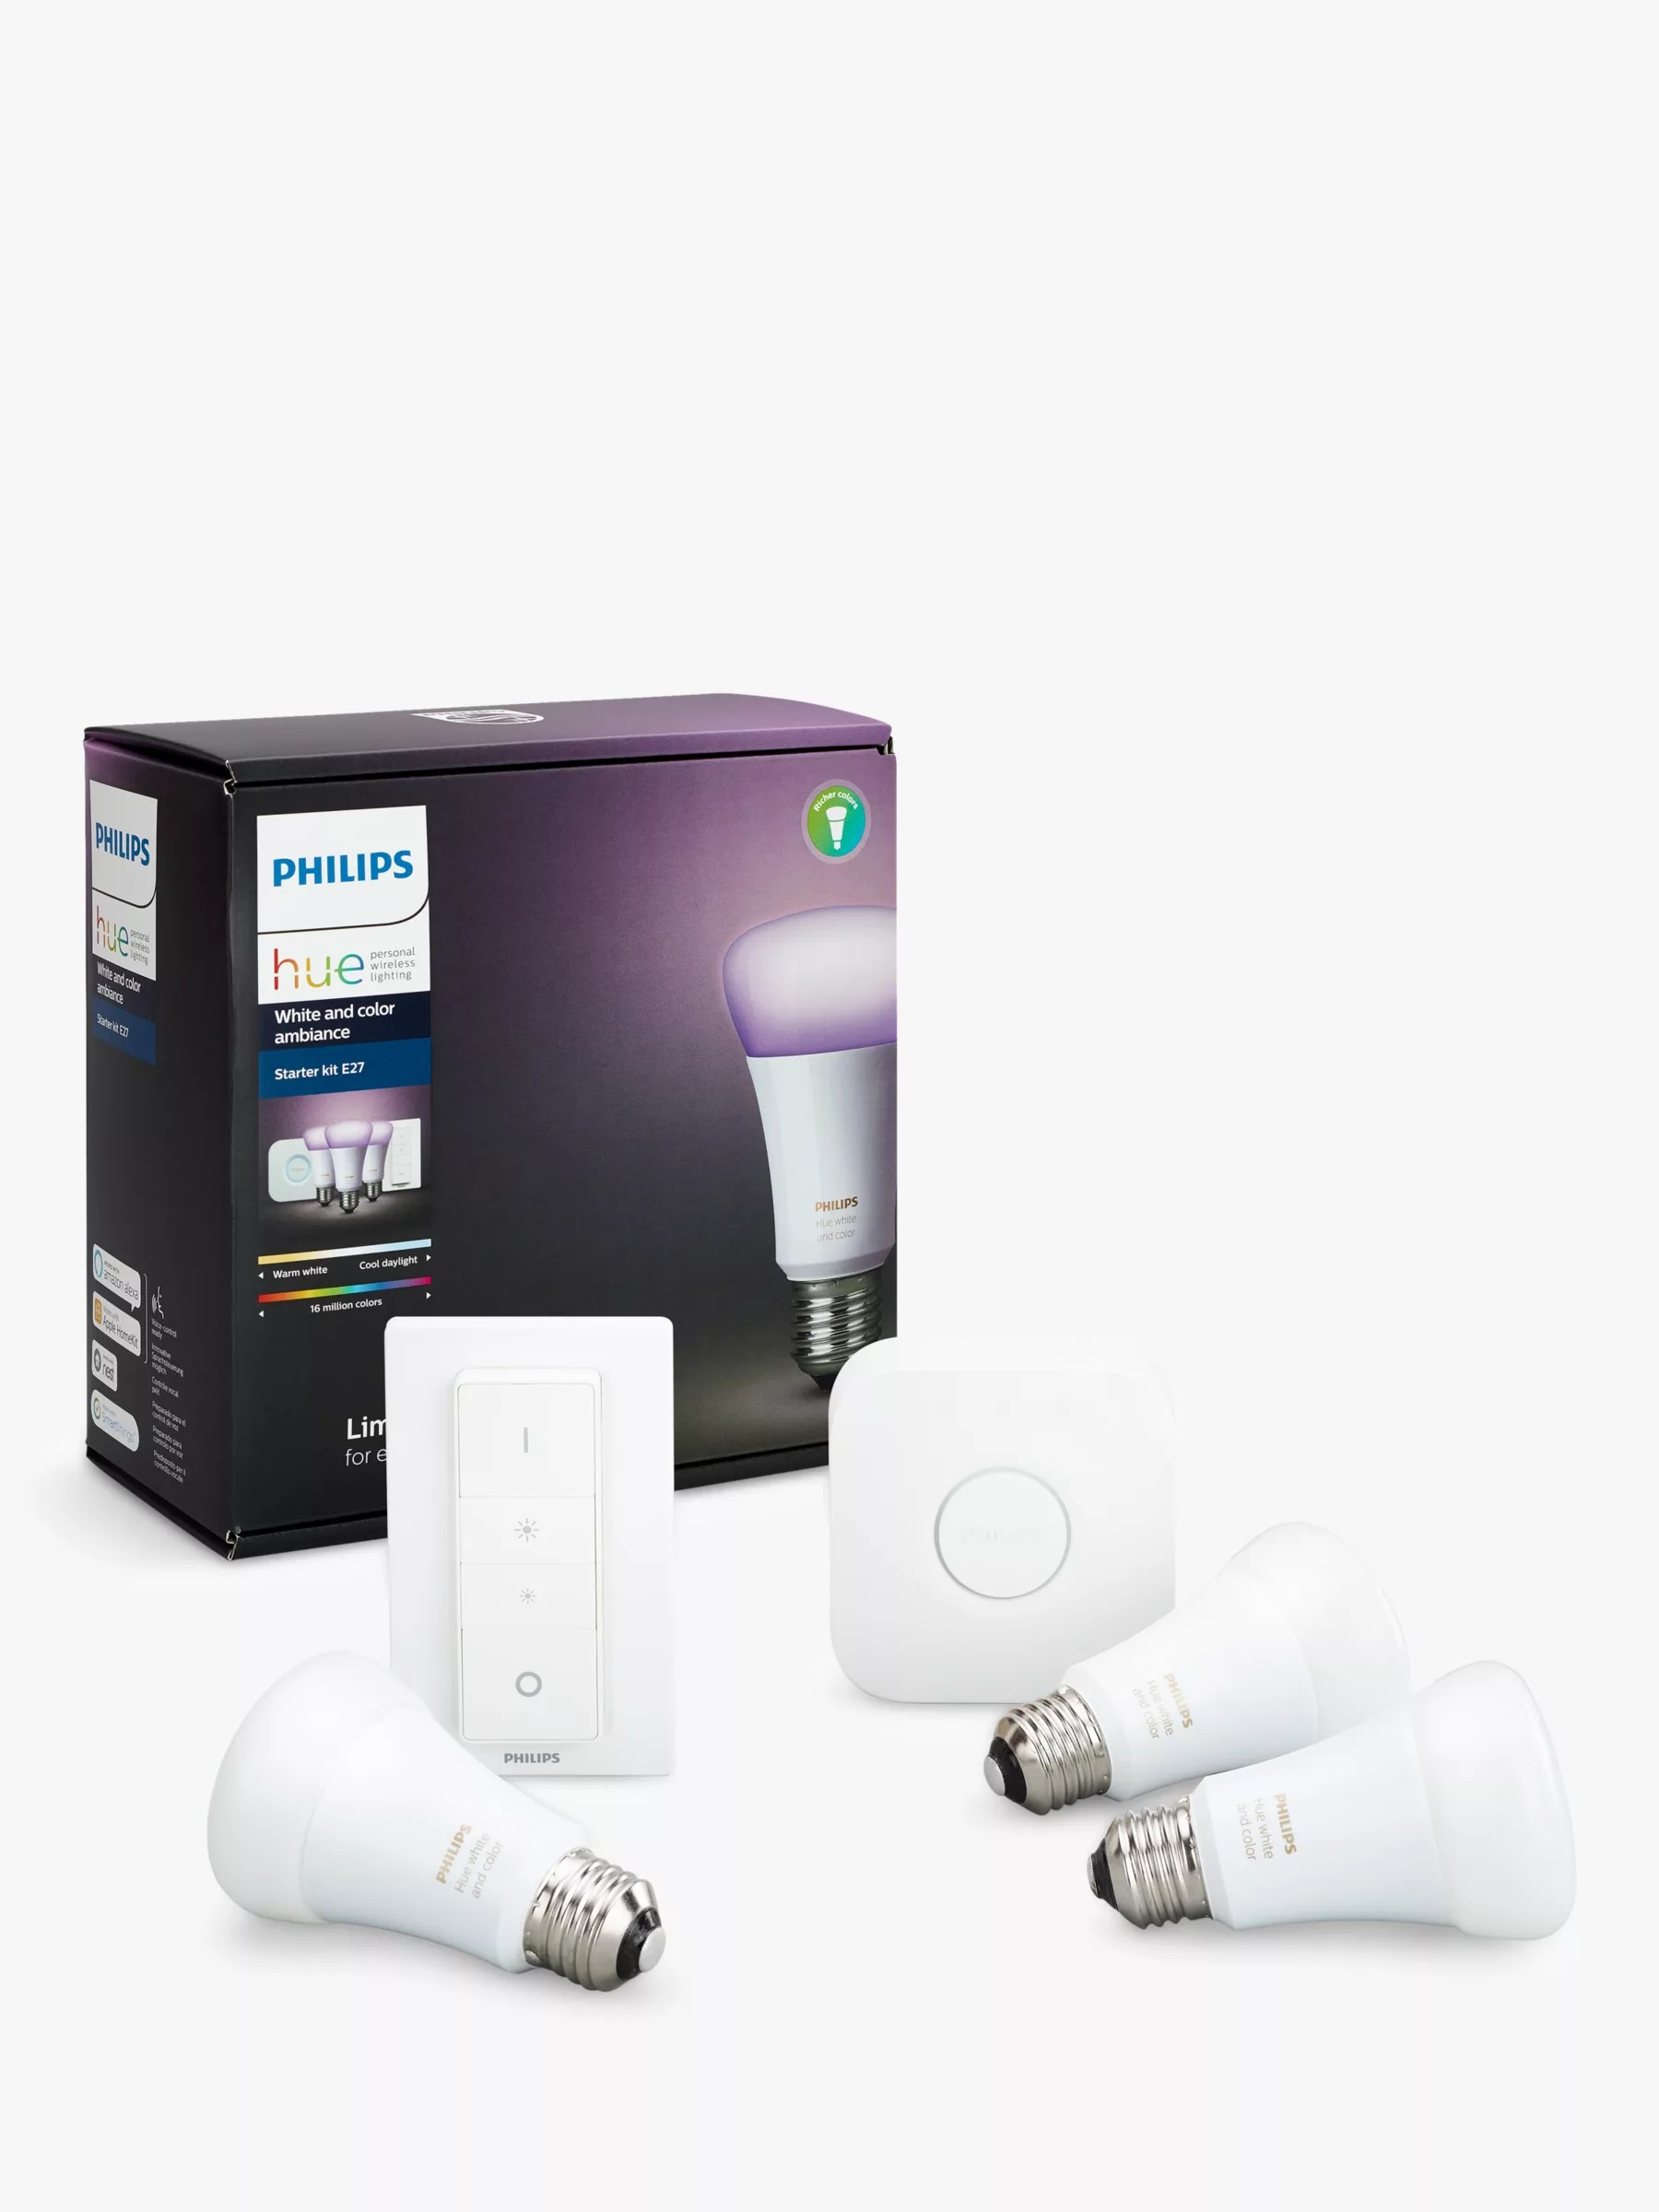 Philips Hue Starter Kit E27 Philips Hue White And Colour Ambiance Wireless Lighting Led